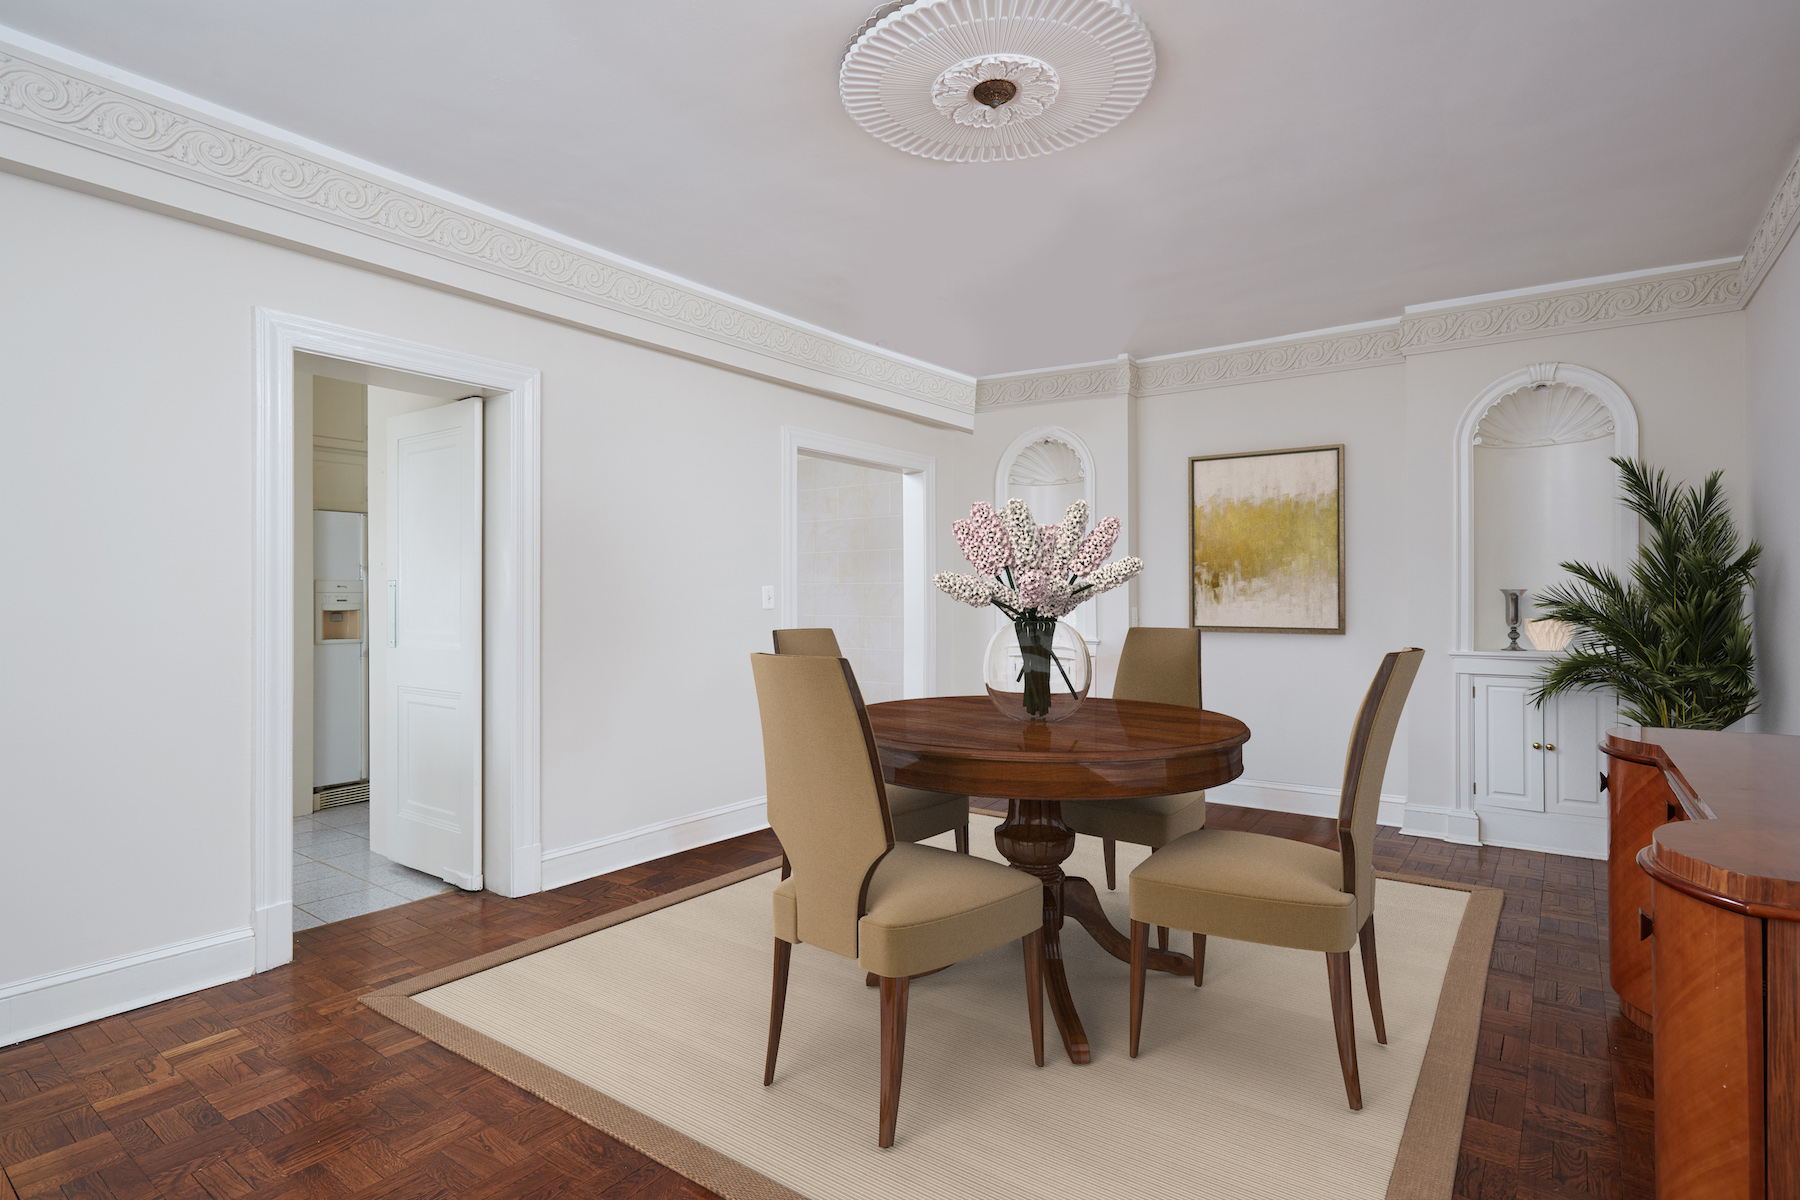 Additional photo for property listing at The Westchester 4000 Cathedral Ave NW #334-335b Washington, District Of Columbia 20016 United States